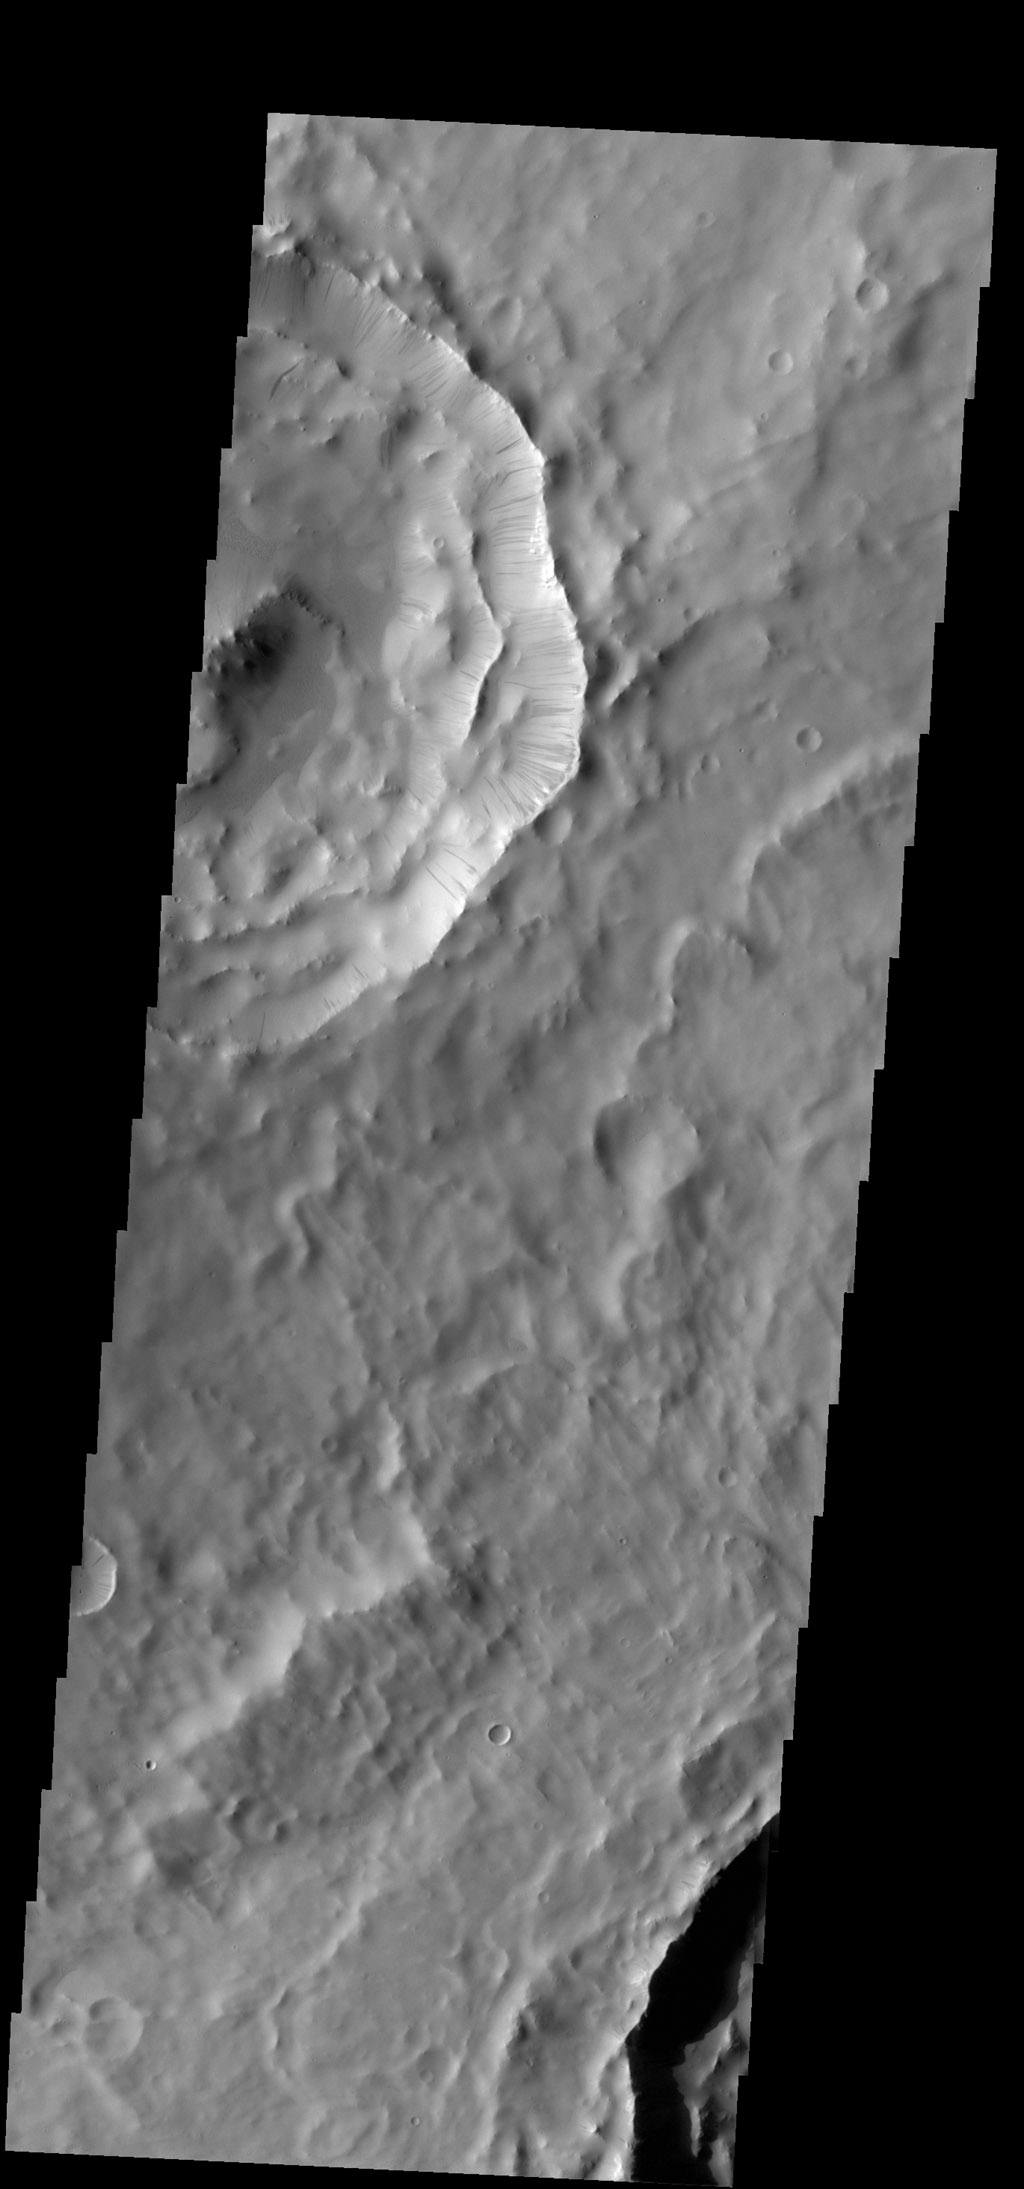 Numerous dark slope streaks are located on the inner rim of this unnamed crater in Terra Sabaea. This image is from NASA's 2001 Mars Odyssey spacecraft.